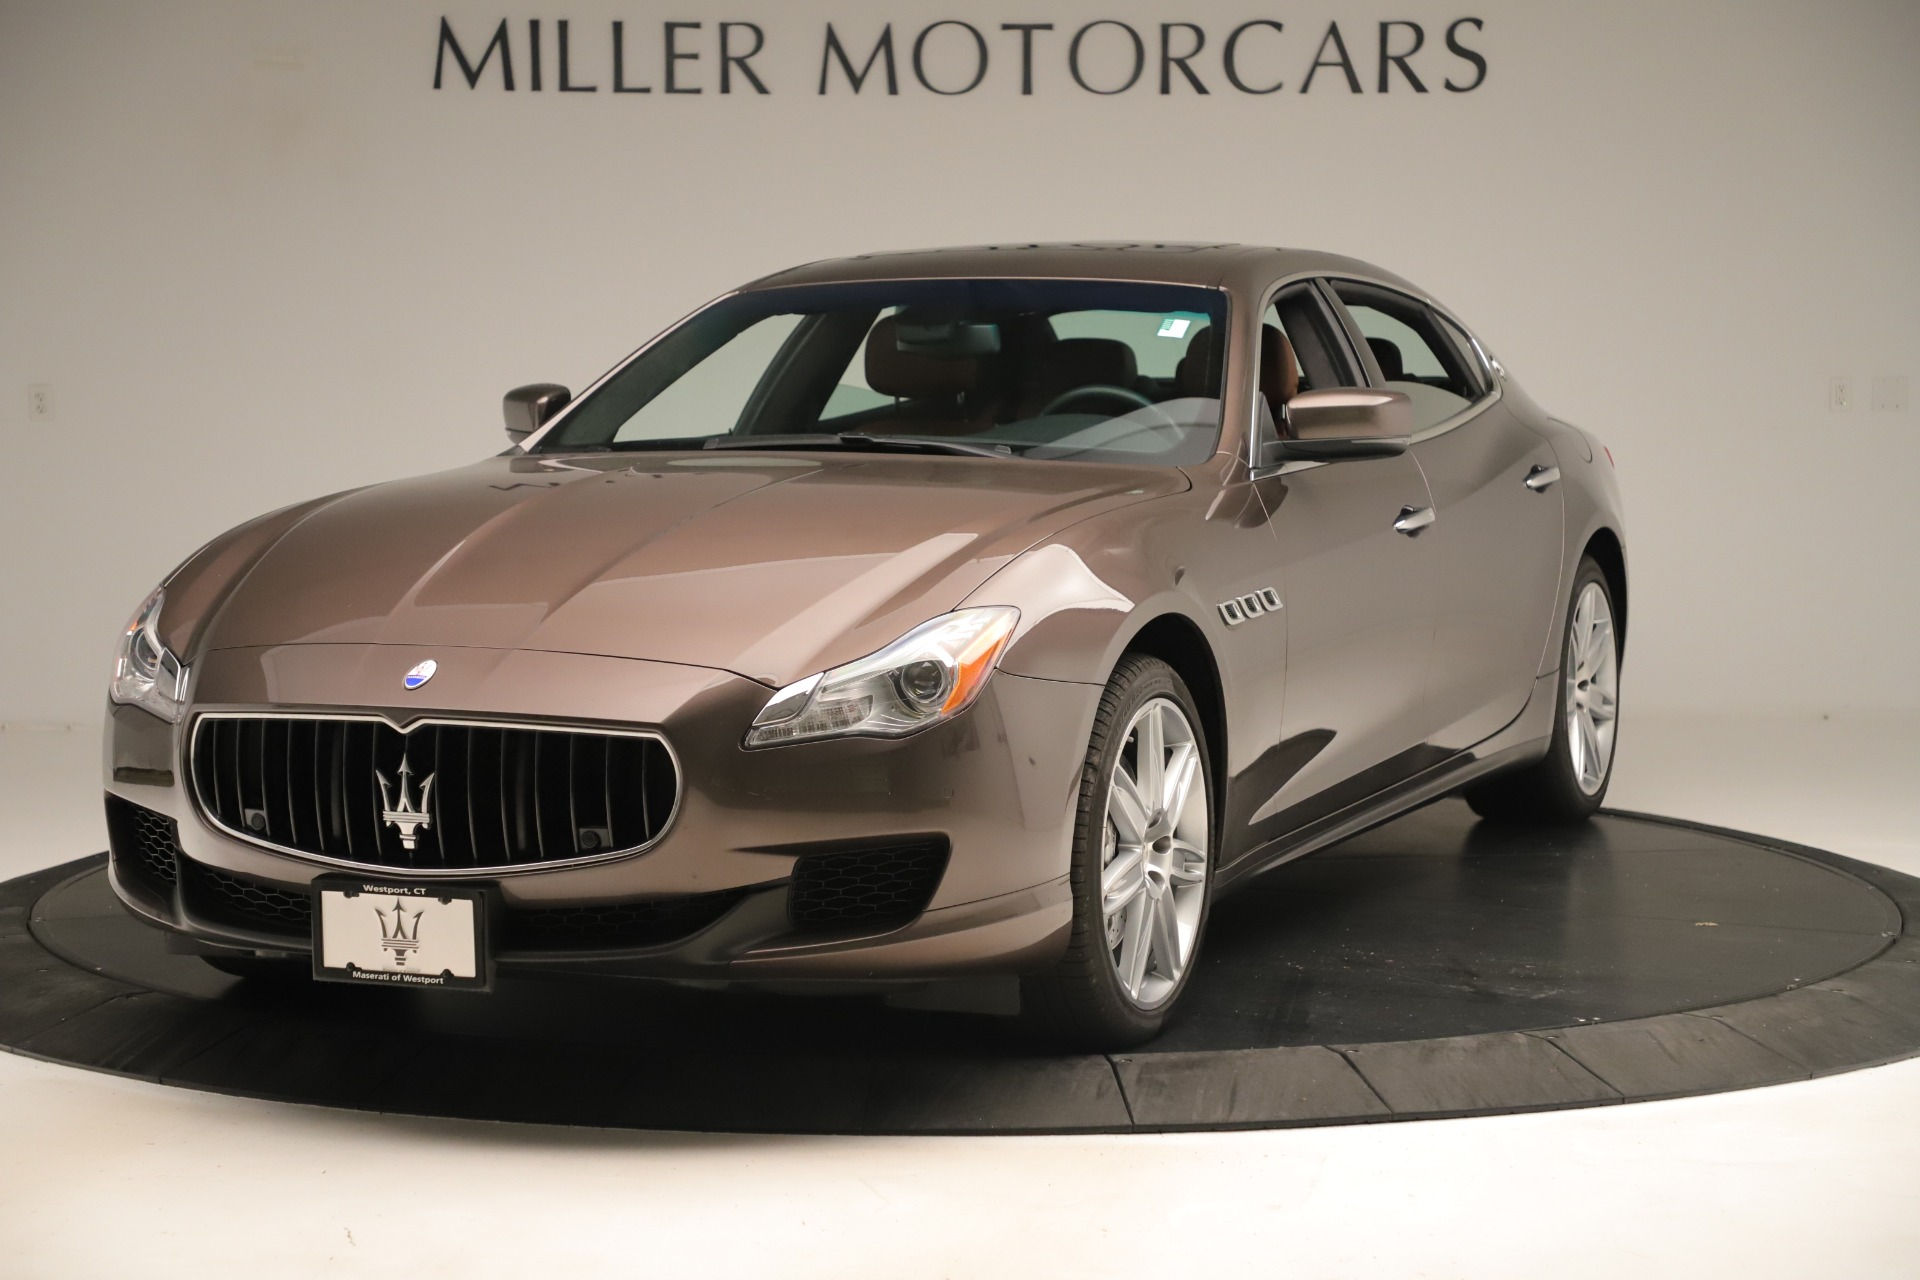 Used 2014 Maserati Quattroporte S Q4 for sale Sold at Rolls-Royce Motor Cars Greenwich in Greenwich CT 06830 1